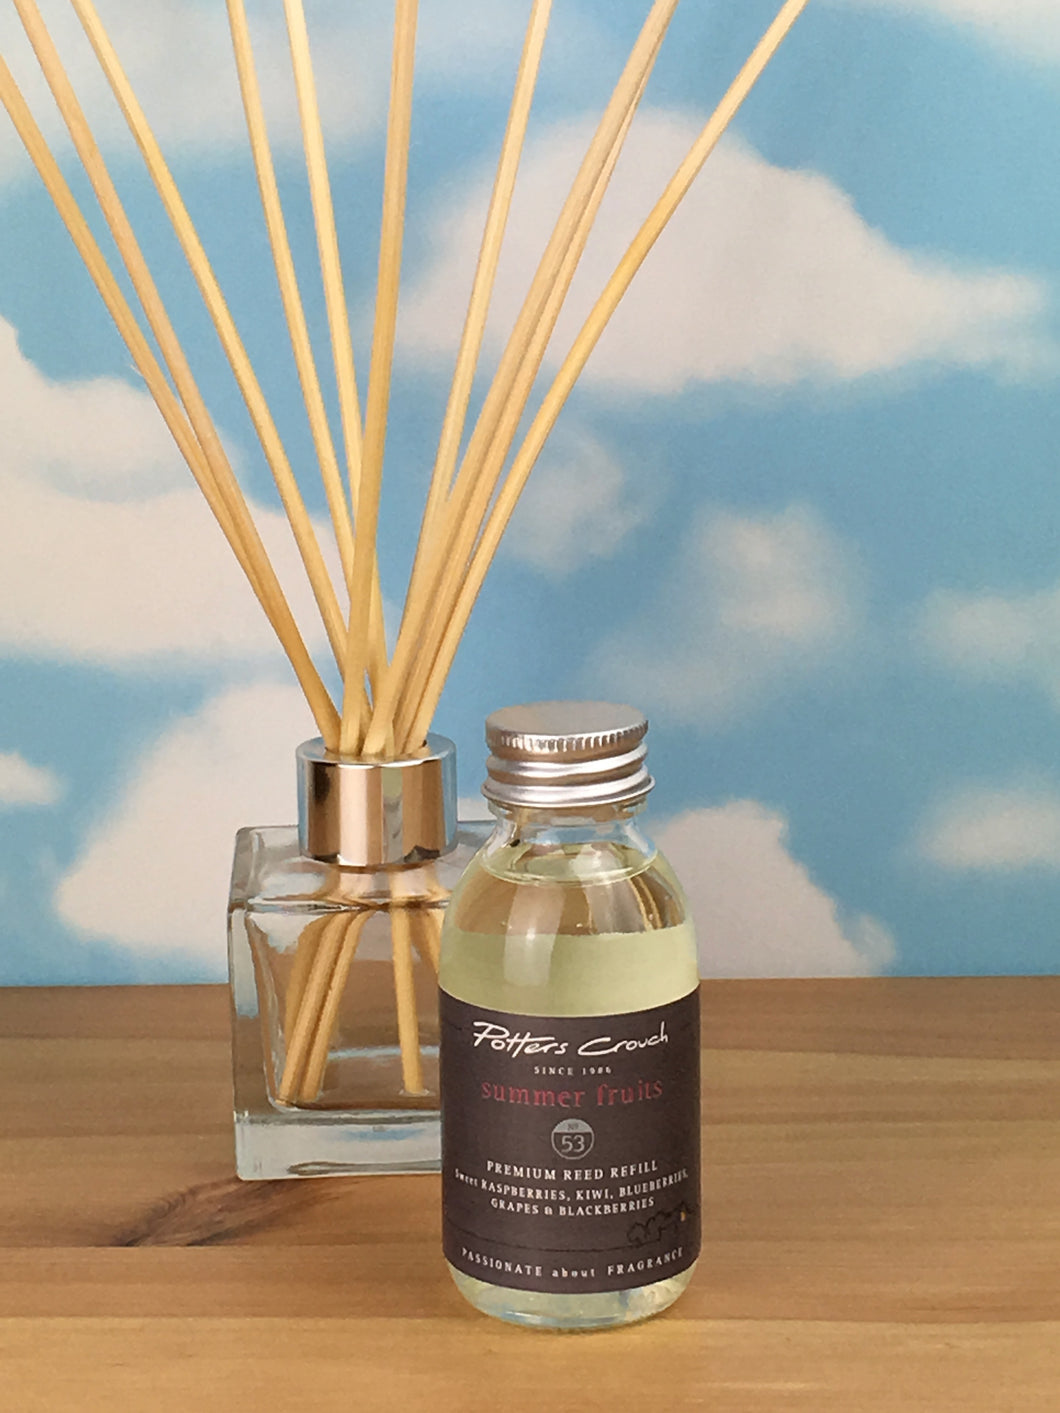 Potters Crouch Summer Fruits Luxury Diffuser Refill (100ml) - Reed Diffuser Refills - Spiffy